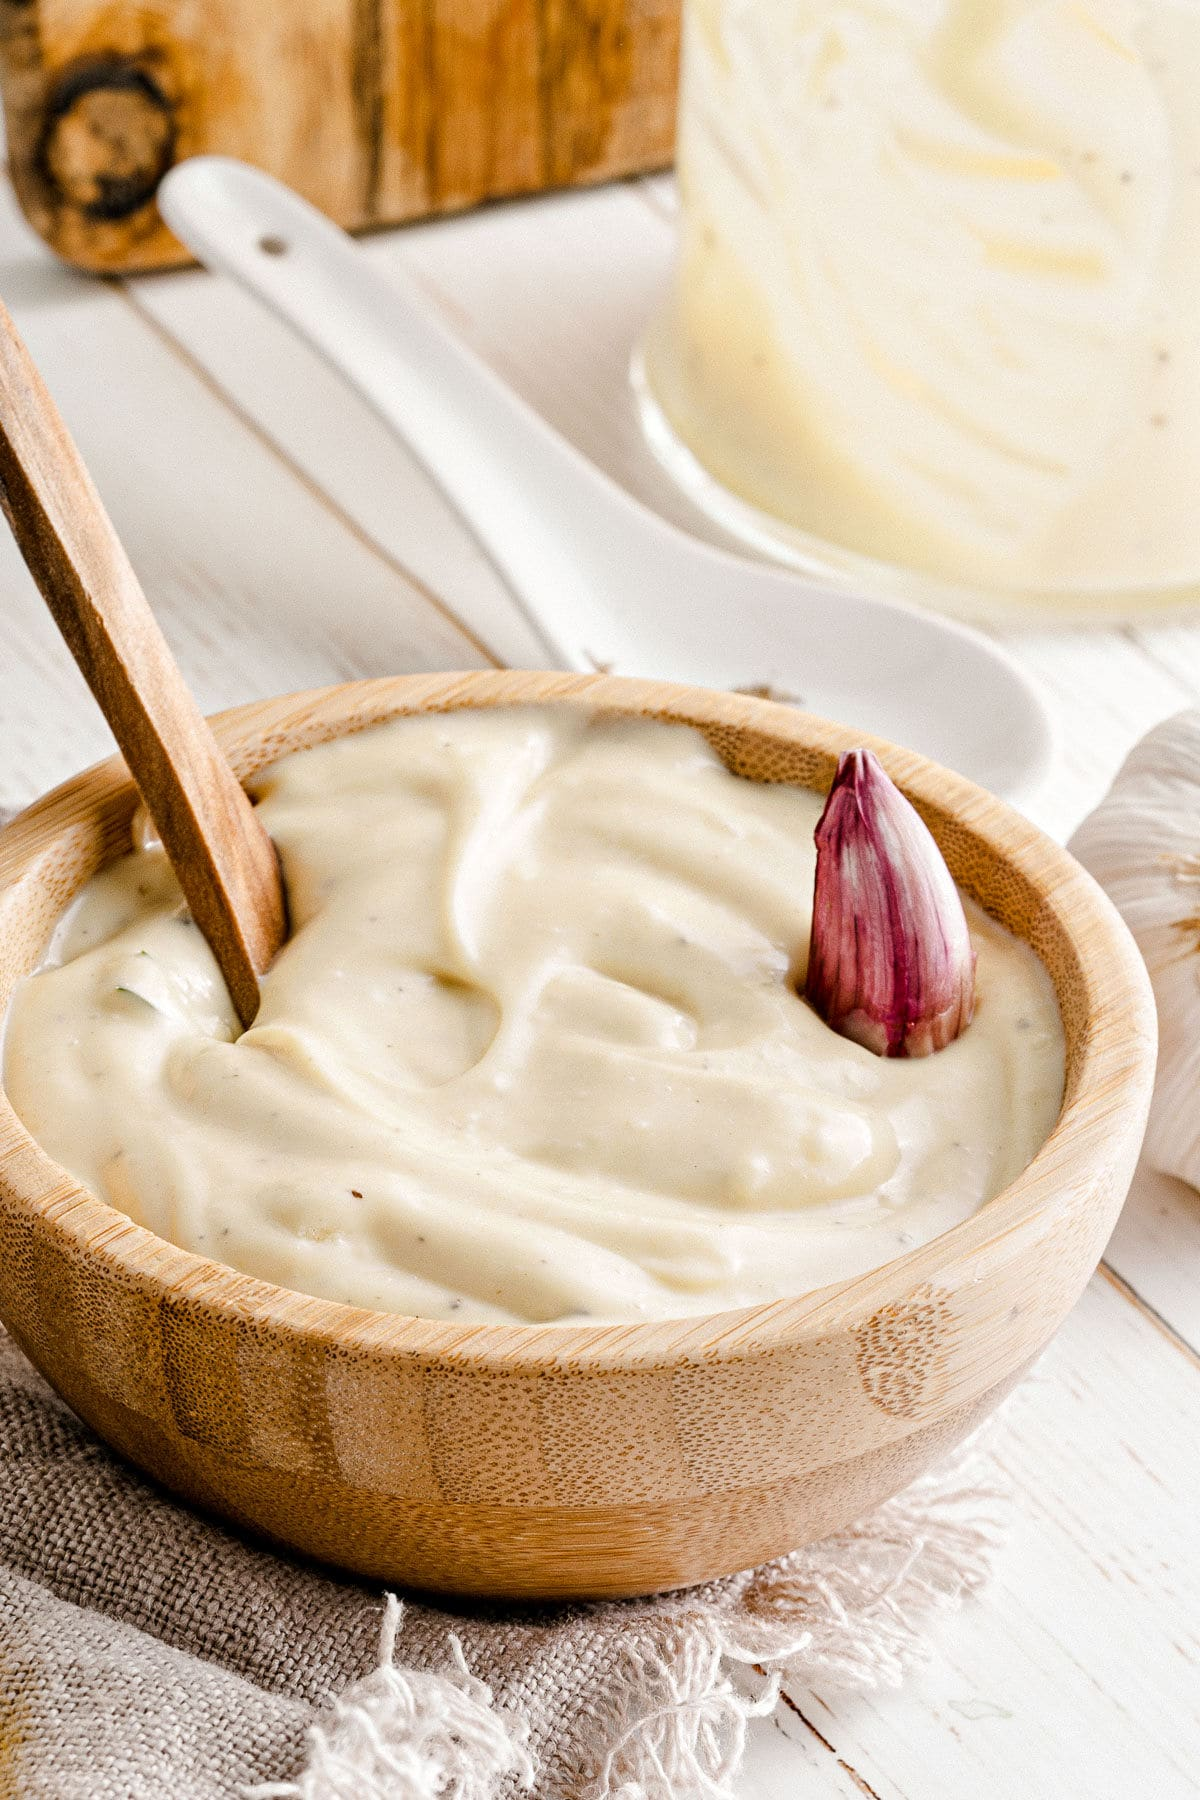 garlic aioli served in wood bowl with spoon inserted and garlic clove resting on top of aioli.